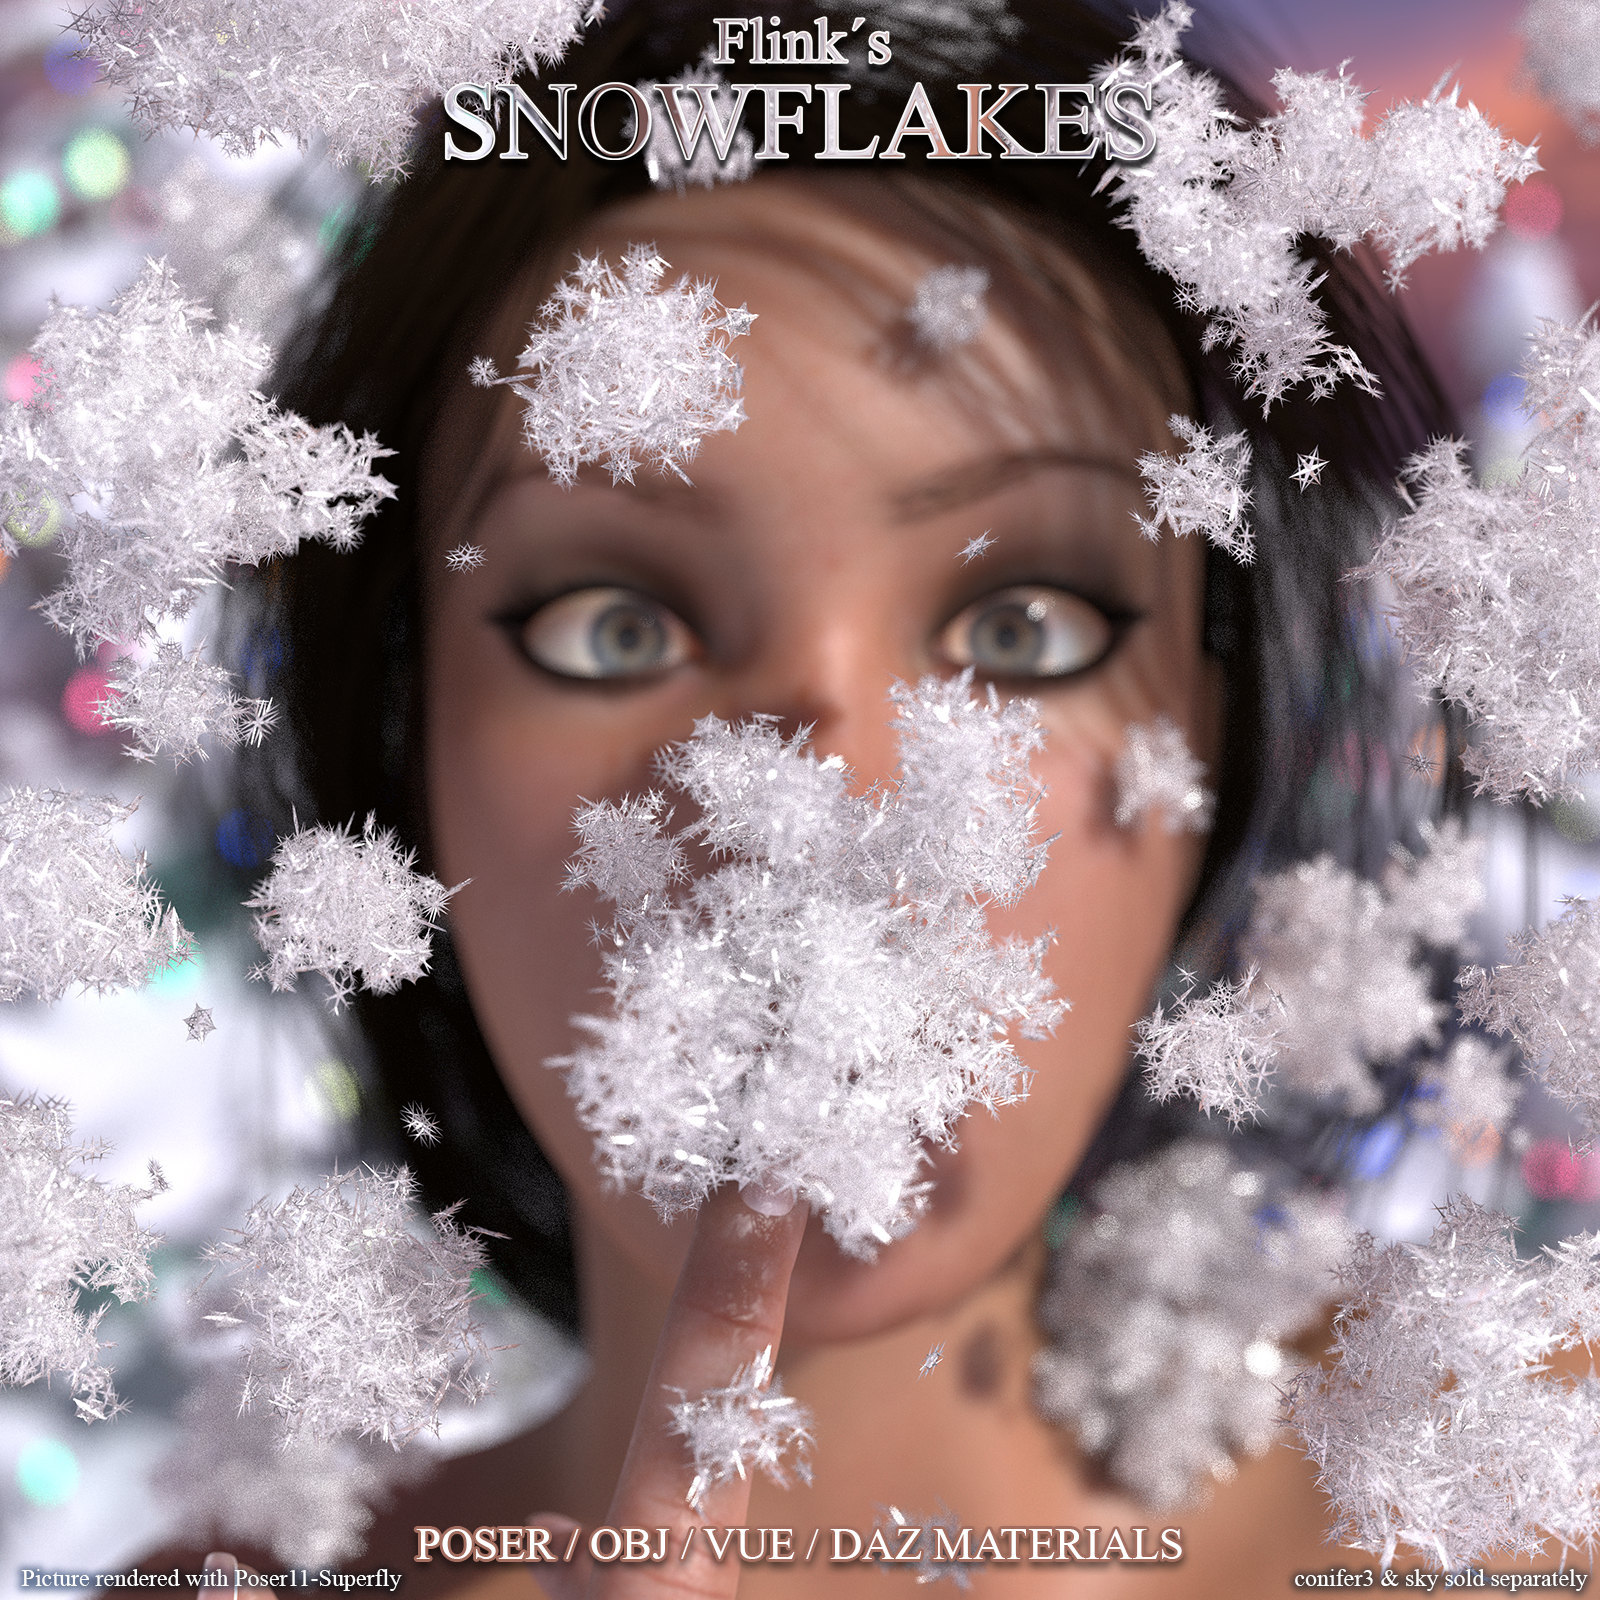 Flinks Snowflakes by Flink